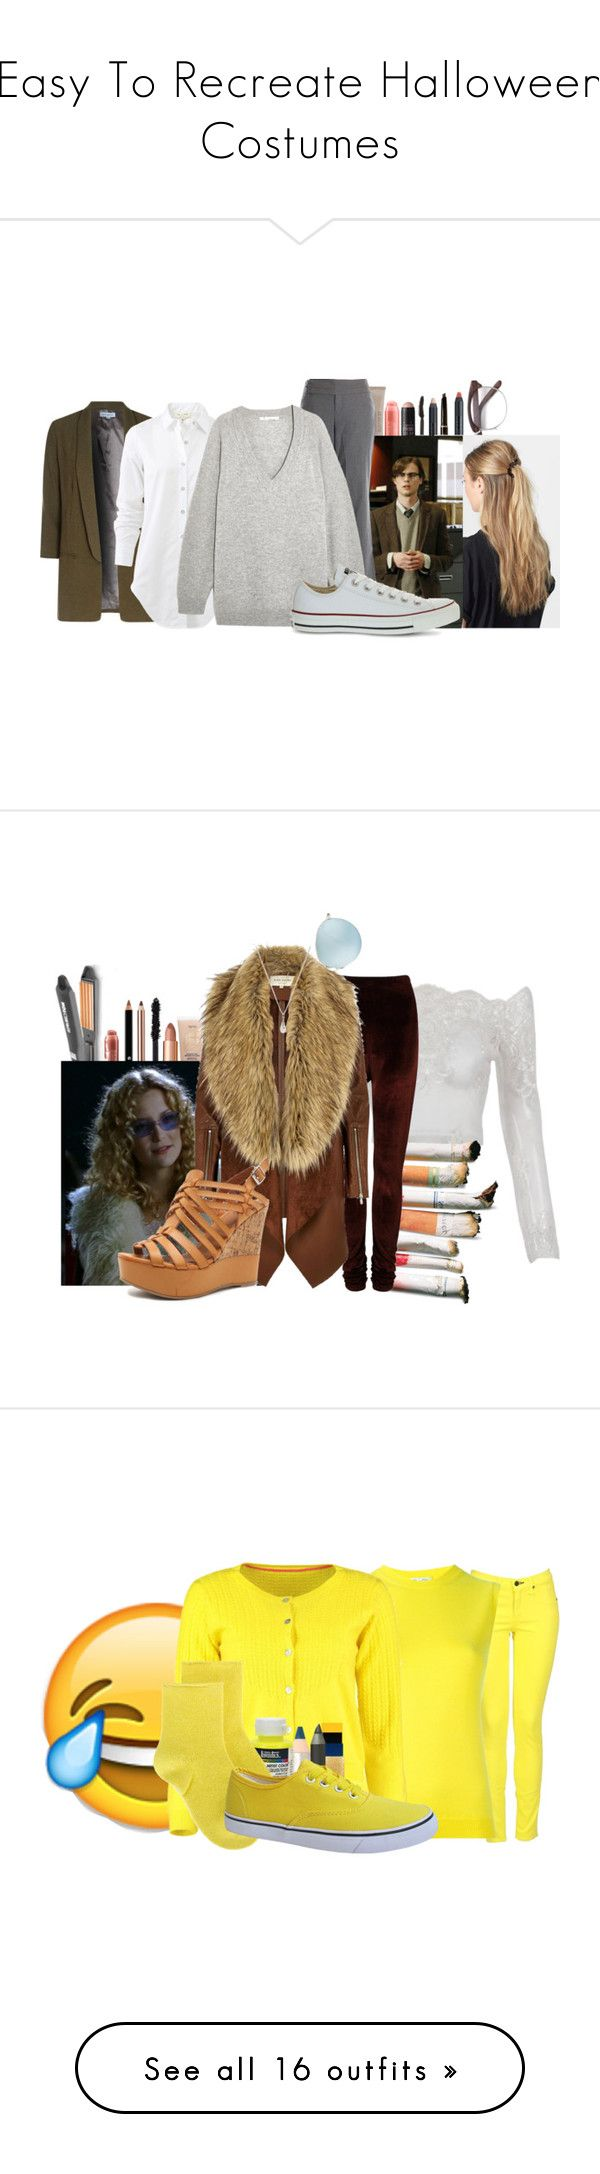 """Easy To Recreate Halloween Costumes"" by cheyleexox ❤ liked on Polyvore featuring Anastasia Beverly Hills, Maybelline, Laura Mercier, Nudestix, Barry M, France Luxe, Alice & You, rag & bone, The Limited and T By Alexander Wang"